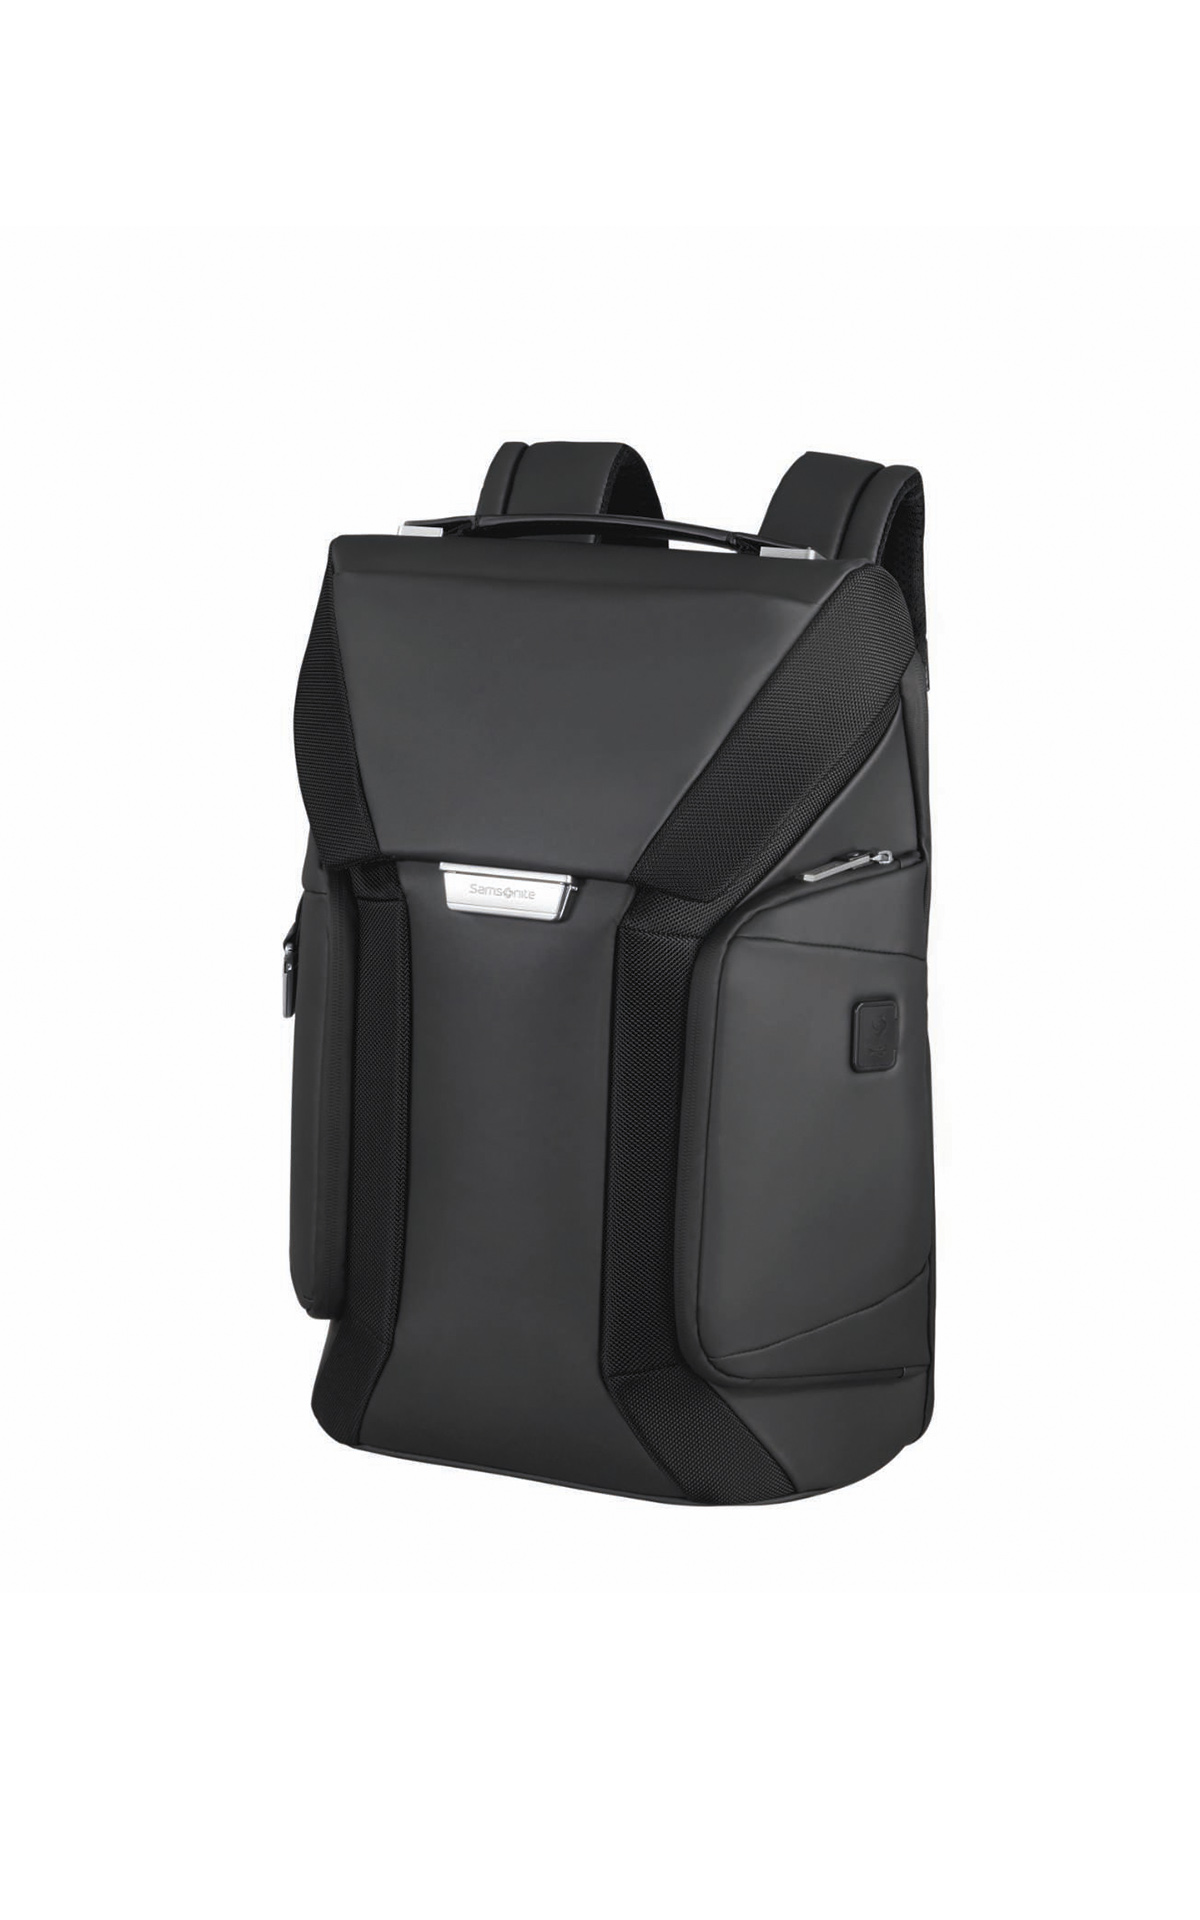 Alubiz backpack samsonite